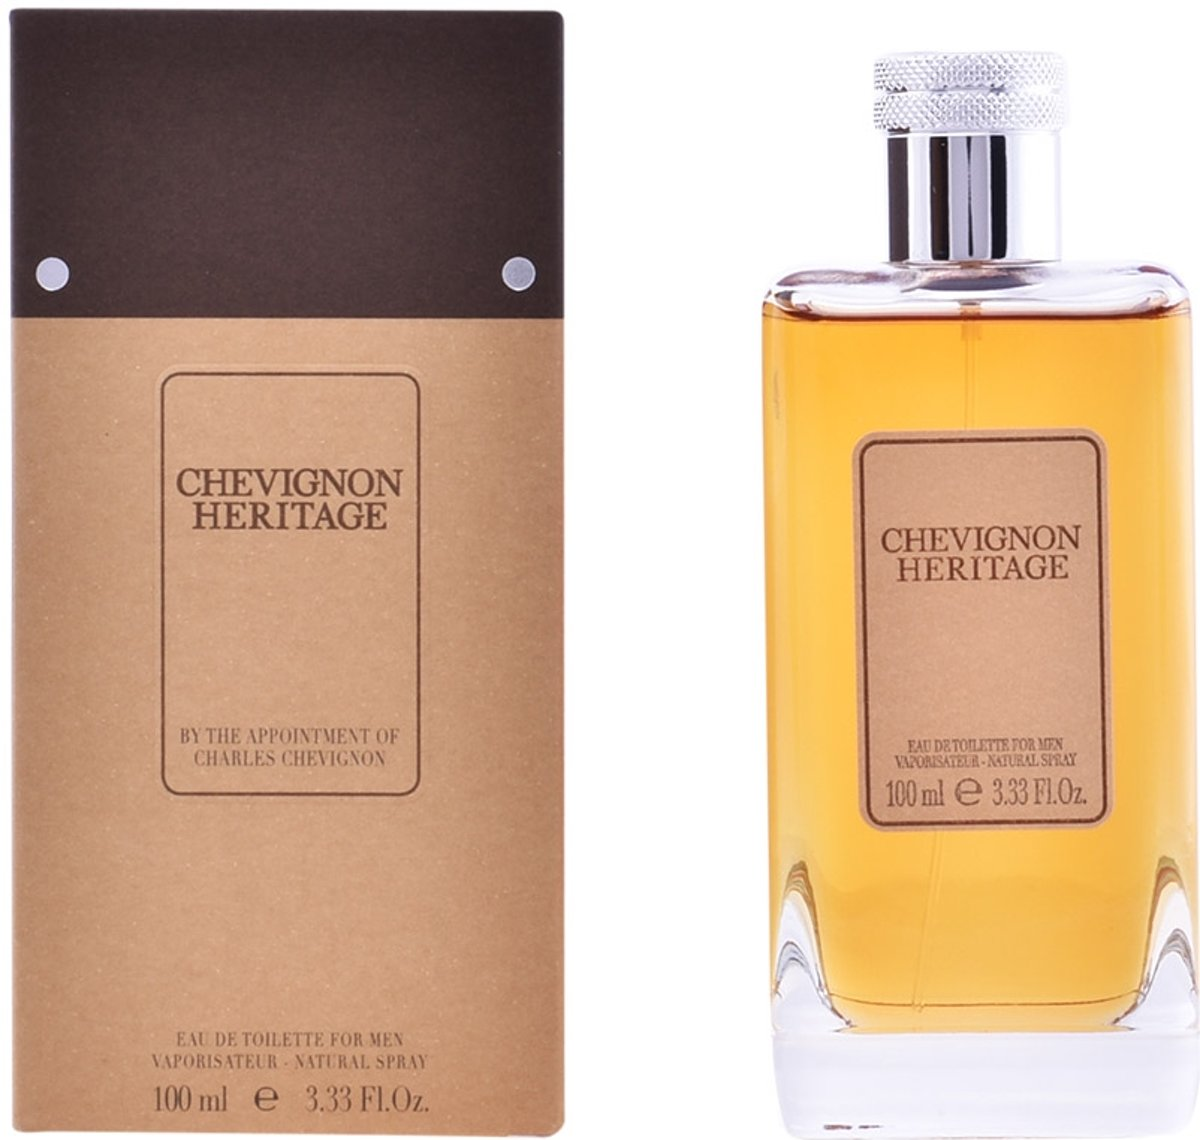 Chevignon Heritage Eau De Toilette Spray 100ml